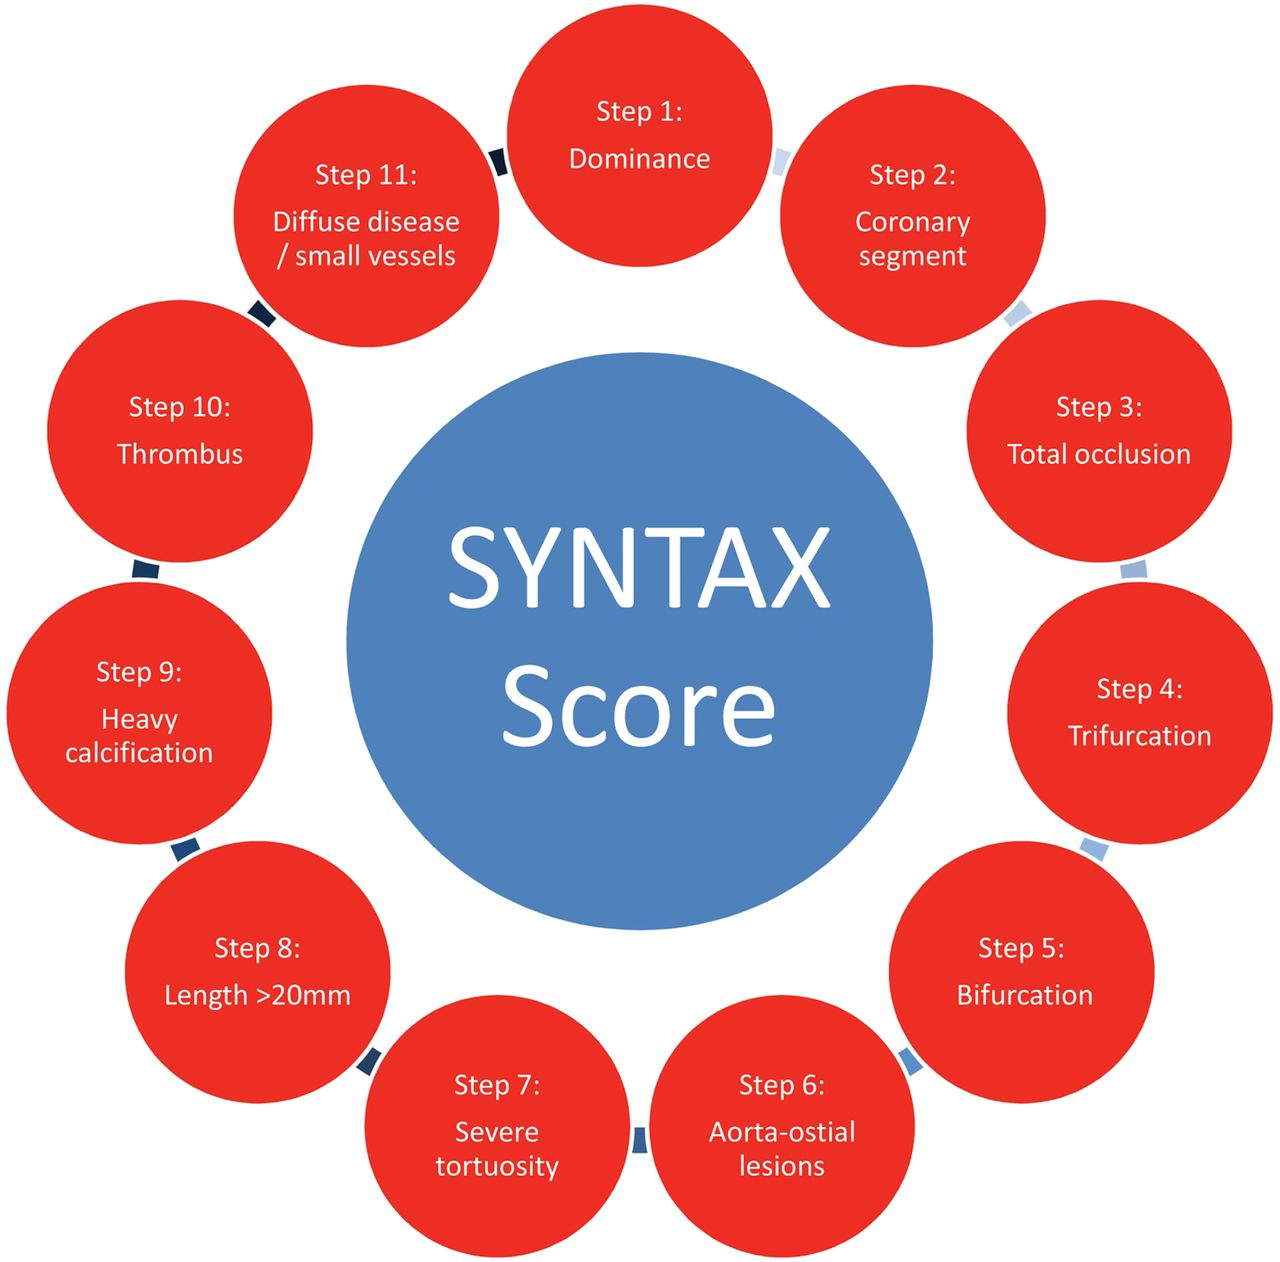 The syntax score and its clinical implications heart download figure ccuart Choice Image